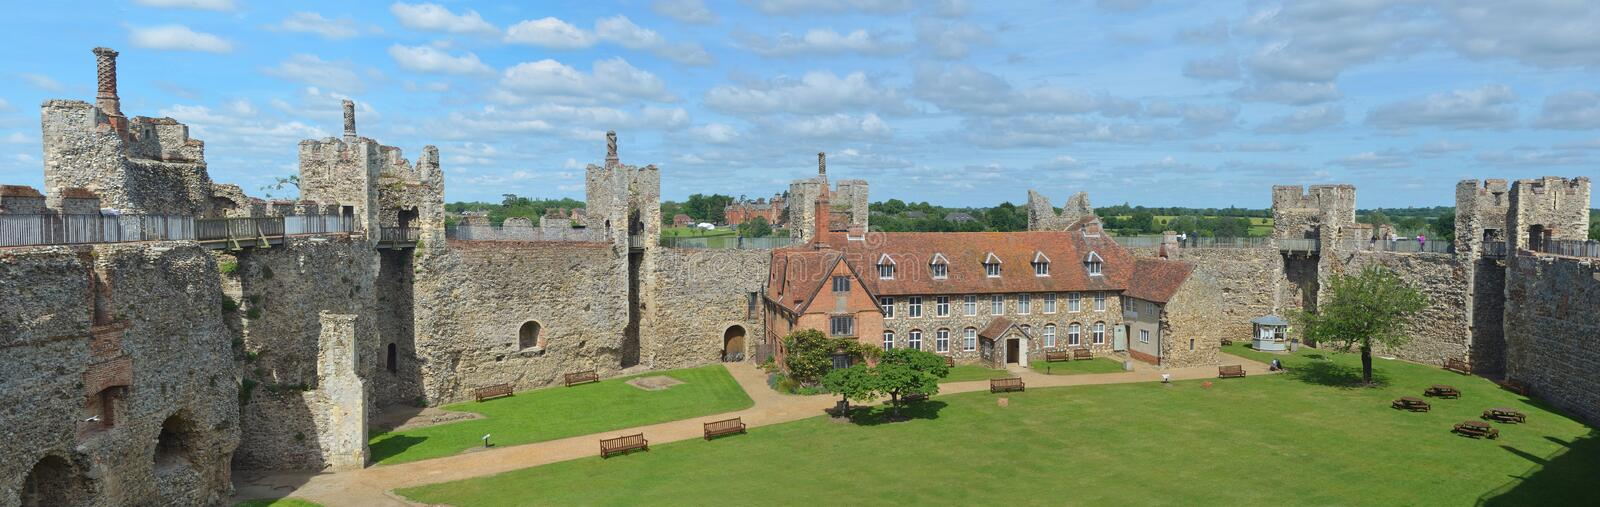 Framlingham Castle and poorhouse royalty free stock photography